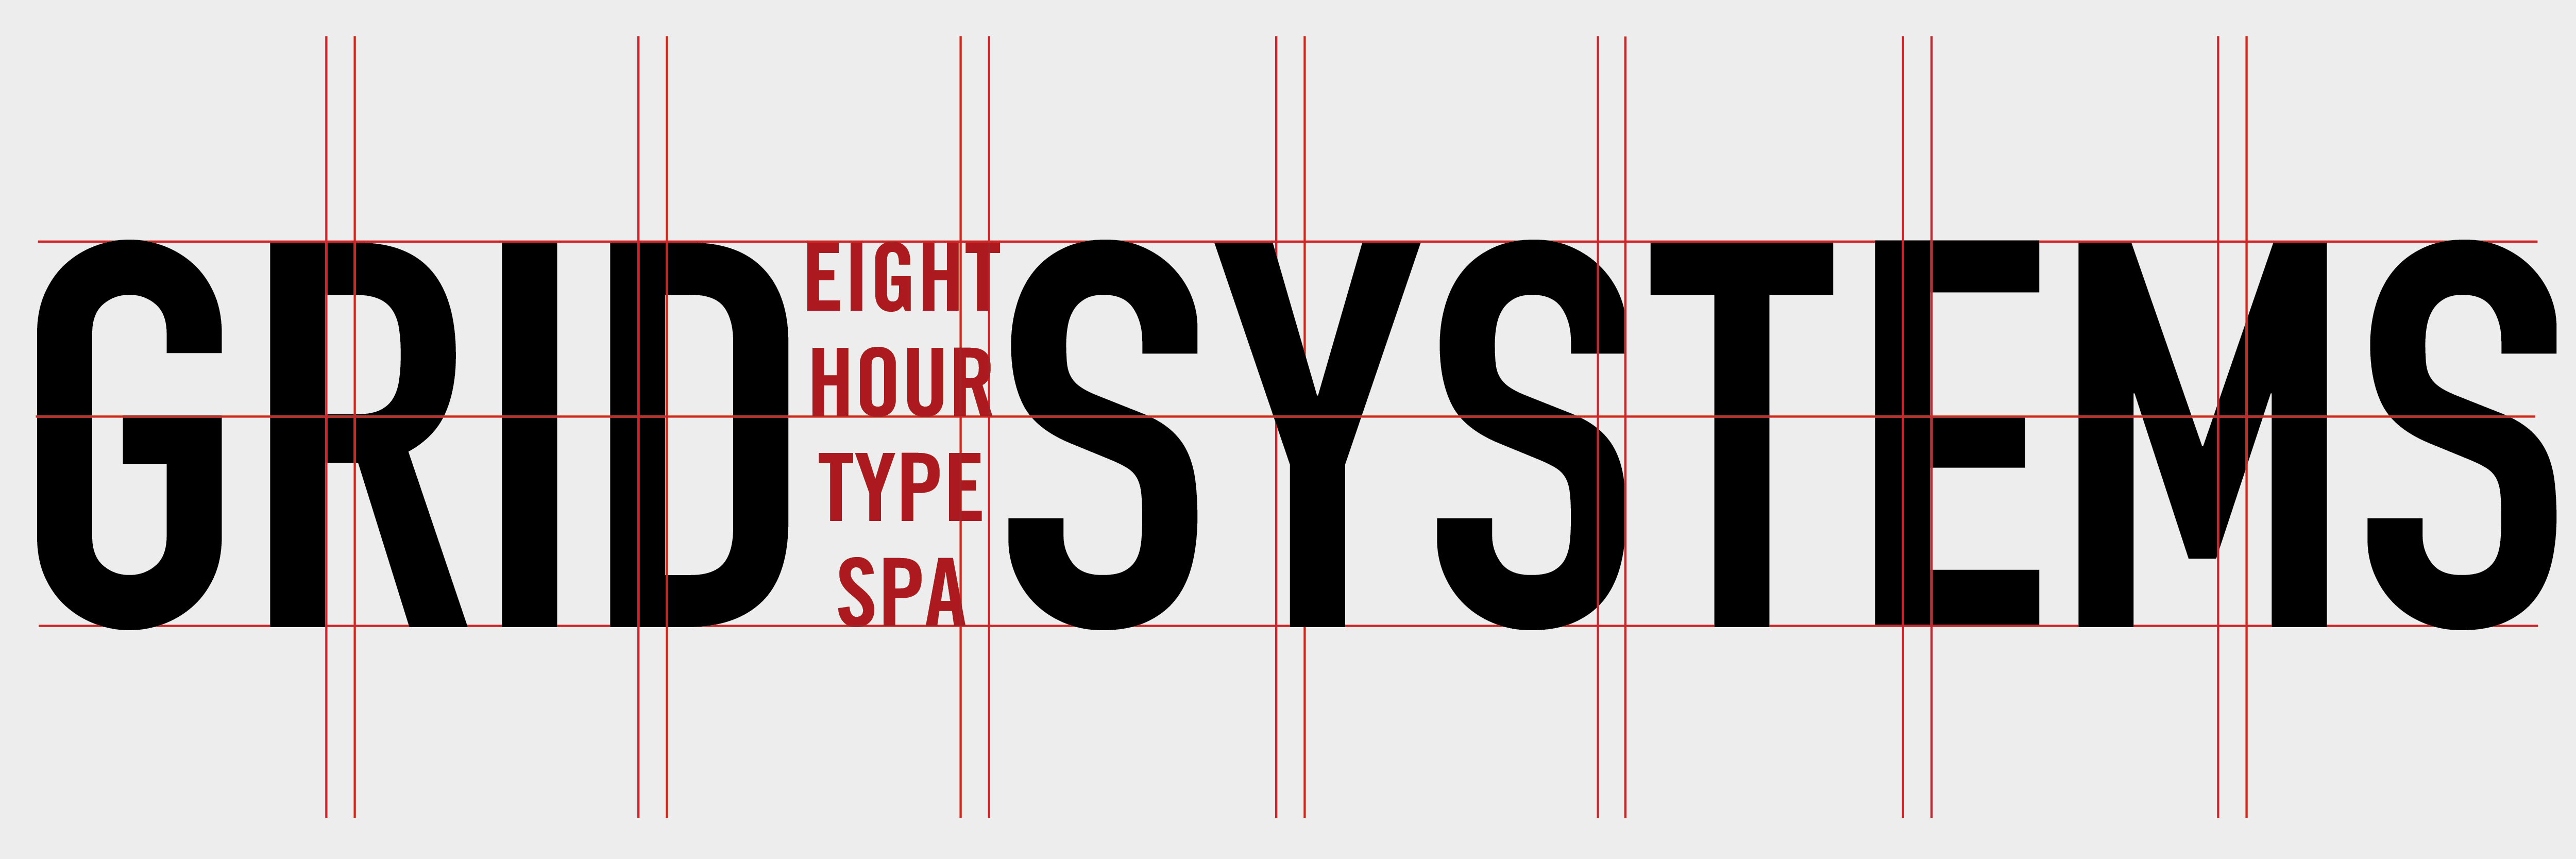 Type@Cooper - Grid Systems: Eight-Hour Type Spa